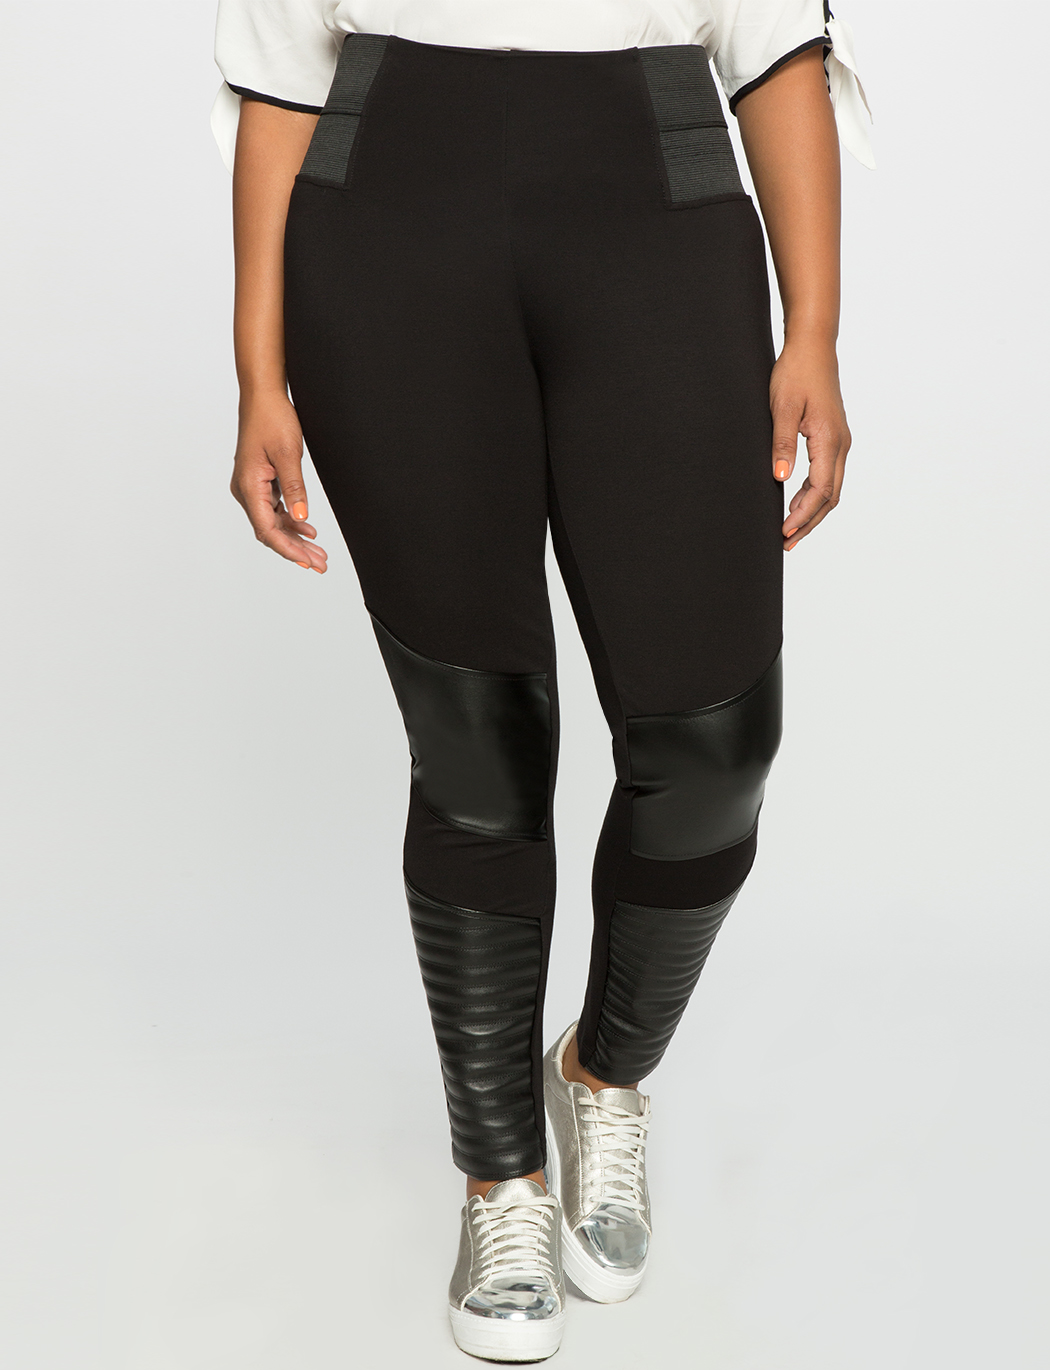 Miracle Flawless Faux Leather Moto Legging